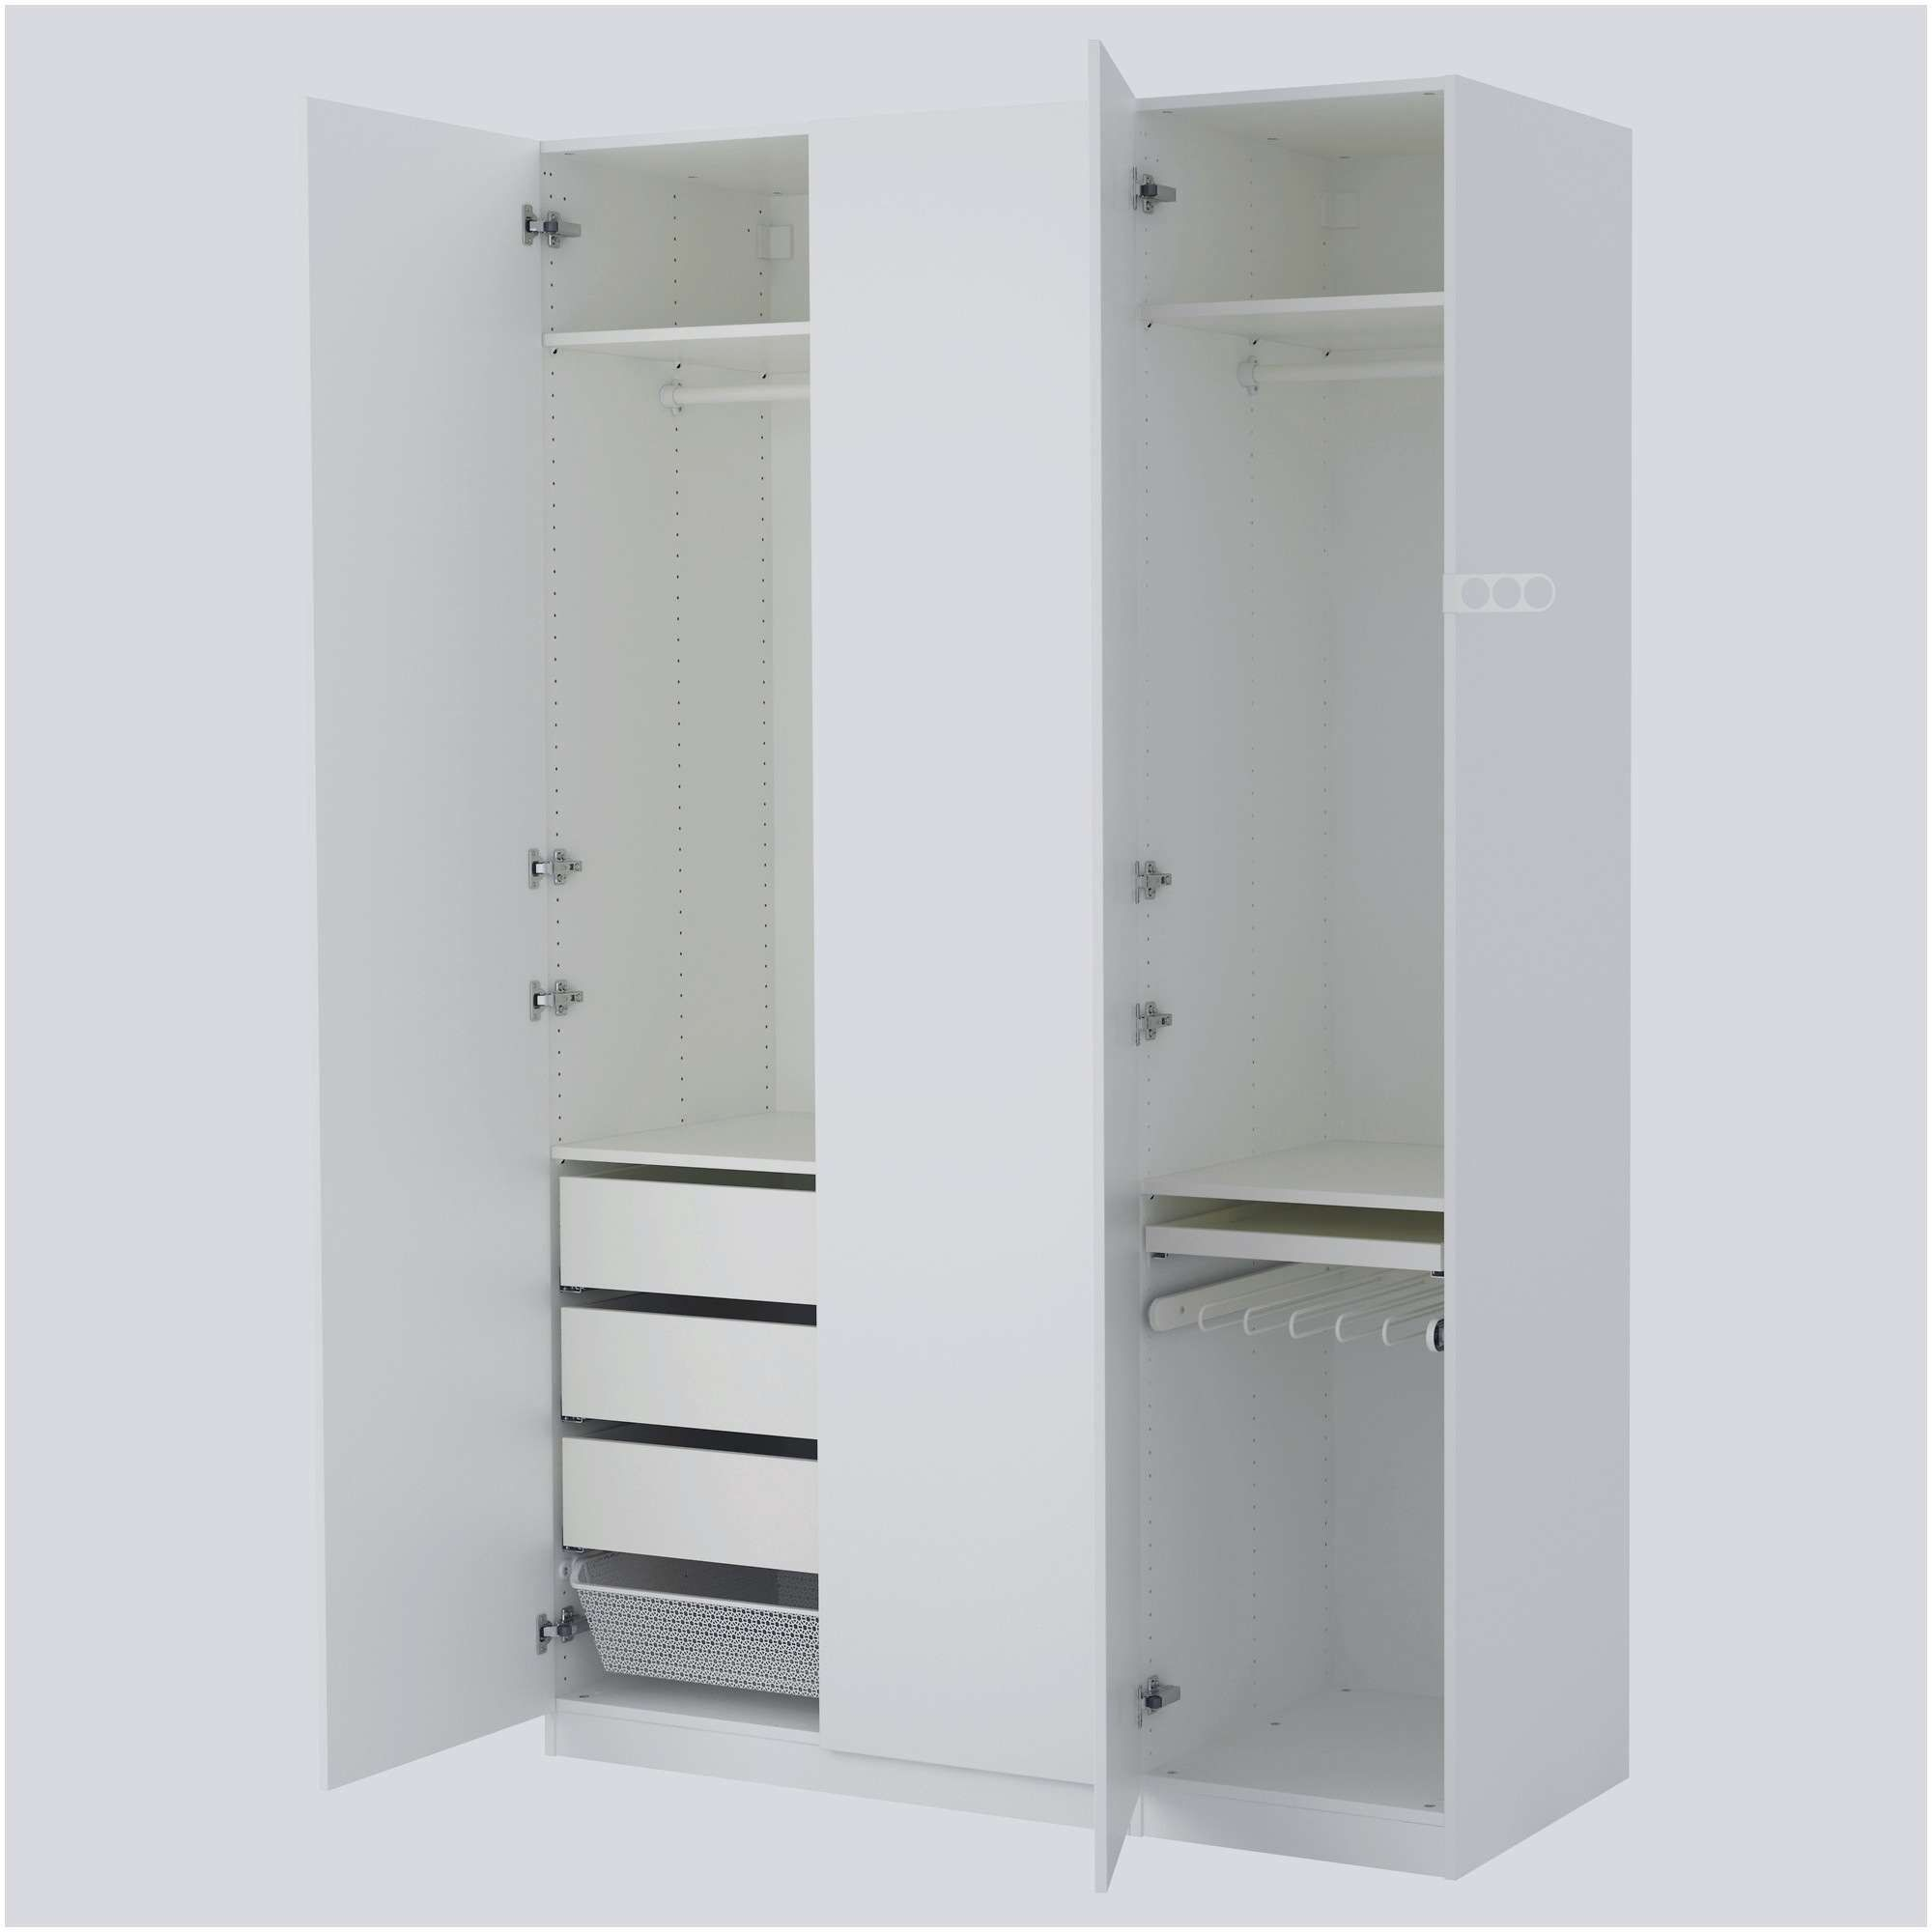 Armoire D Angle Dressing armoire d angle dressing - armoire d angle dressing meuble d